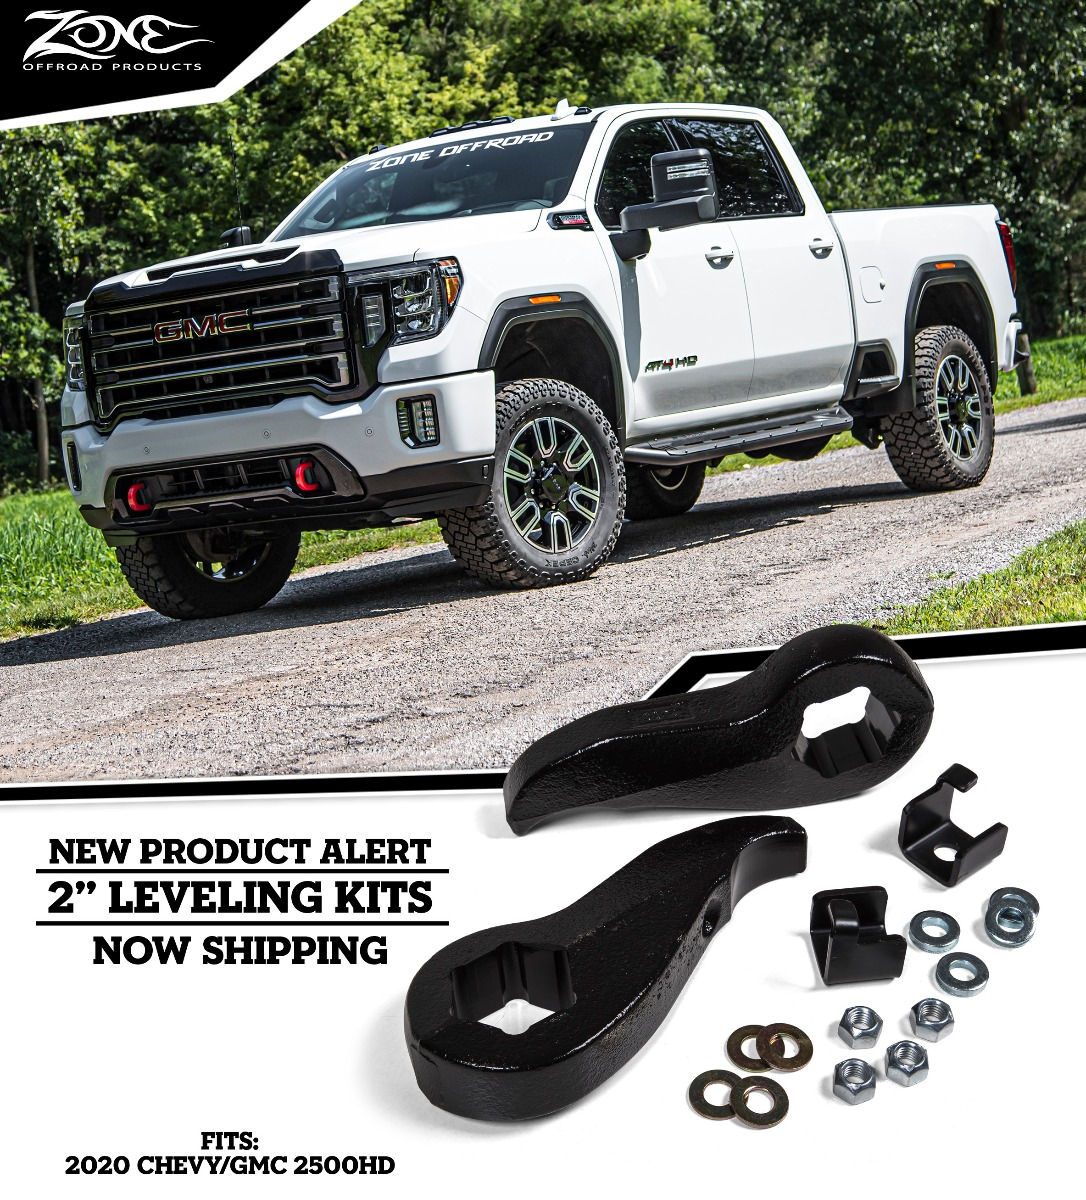 Zone Offroad Npr 155 2 Leveling Kits For 2020 Chevy Gmc Hd